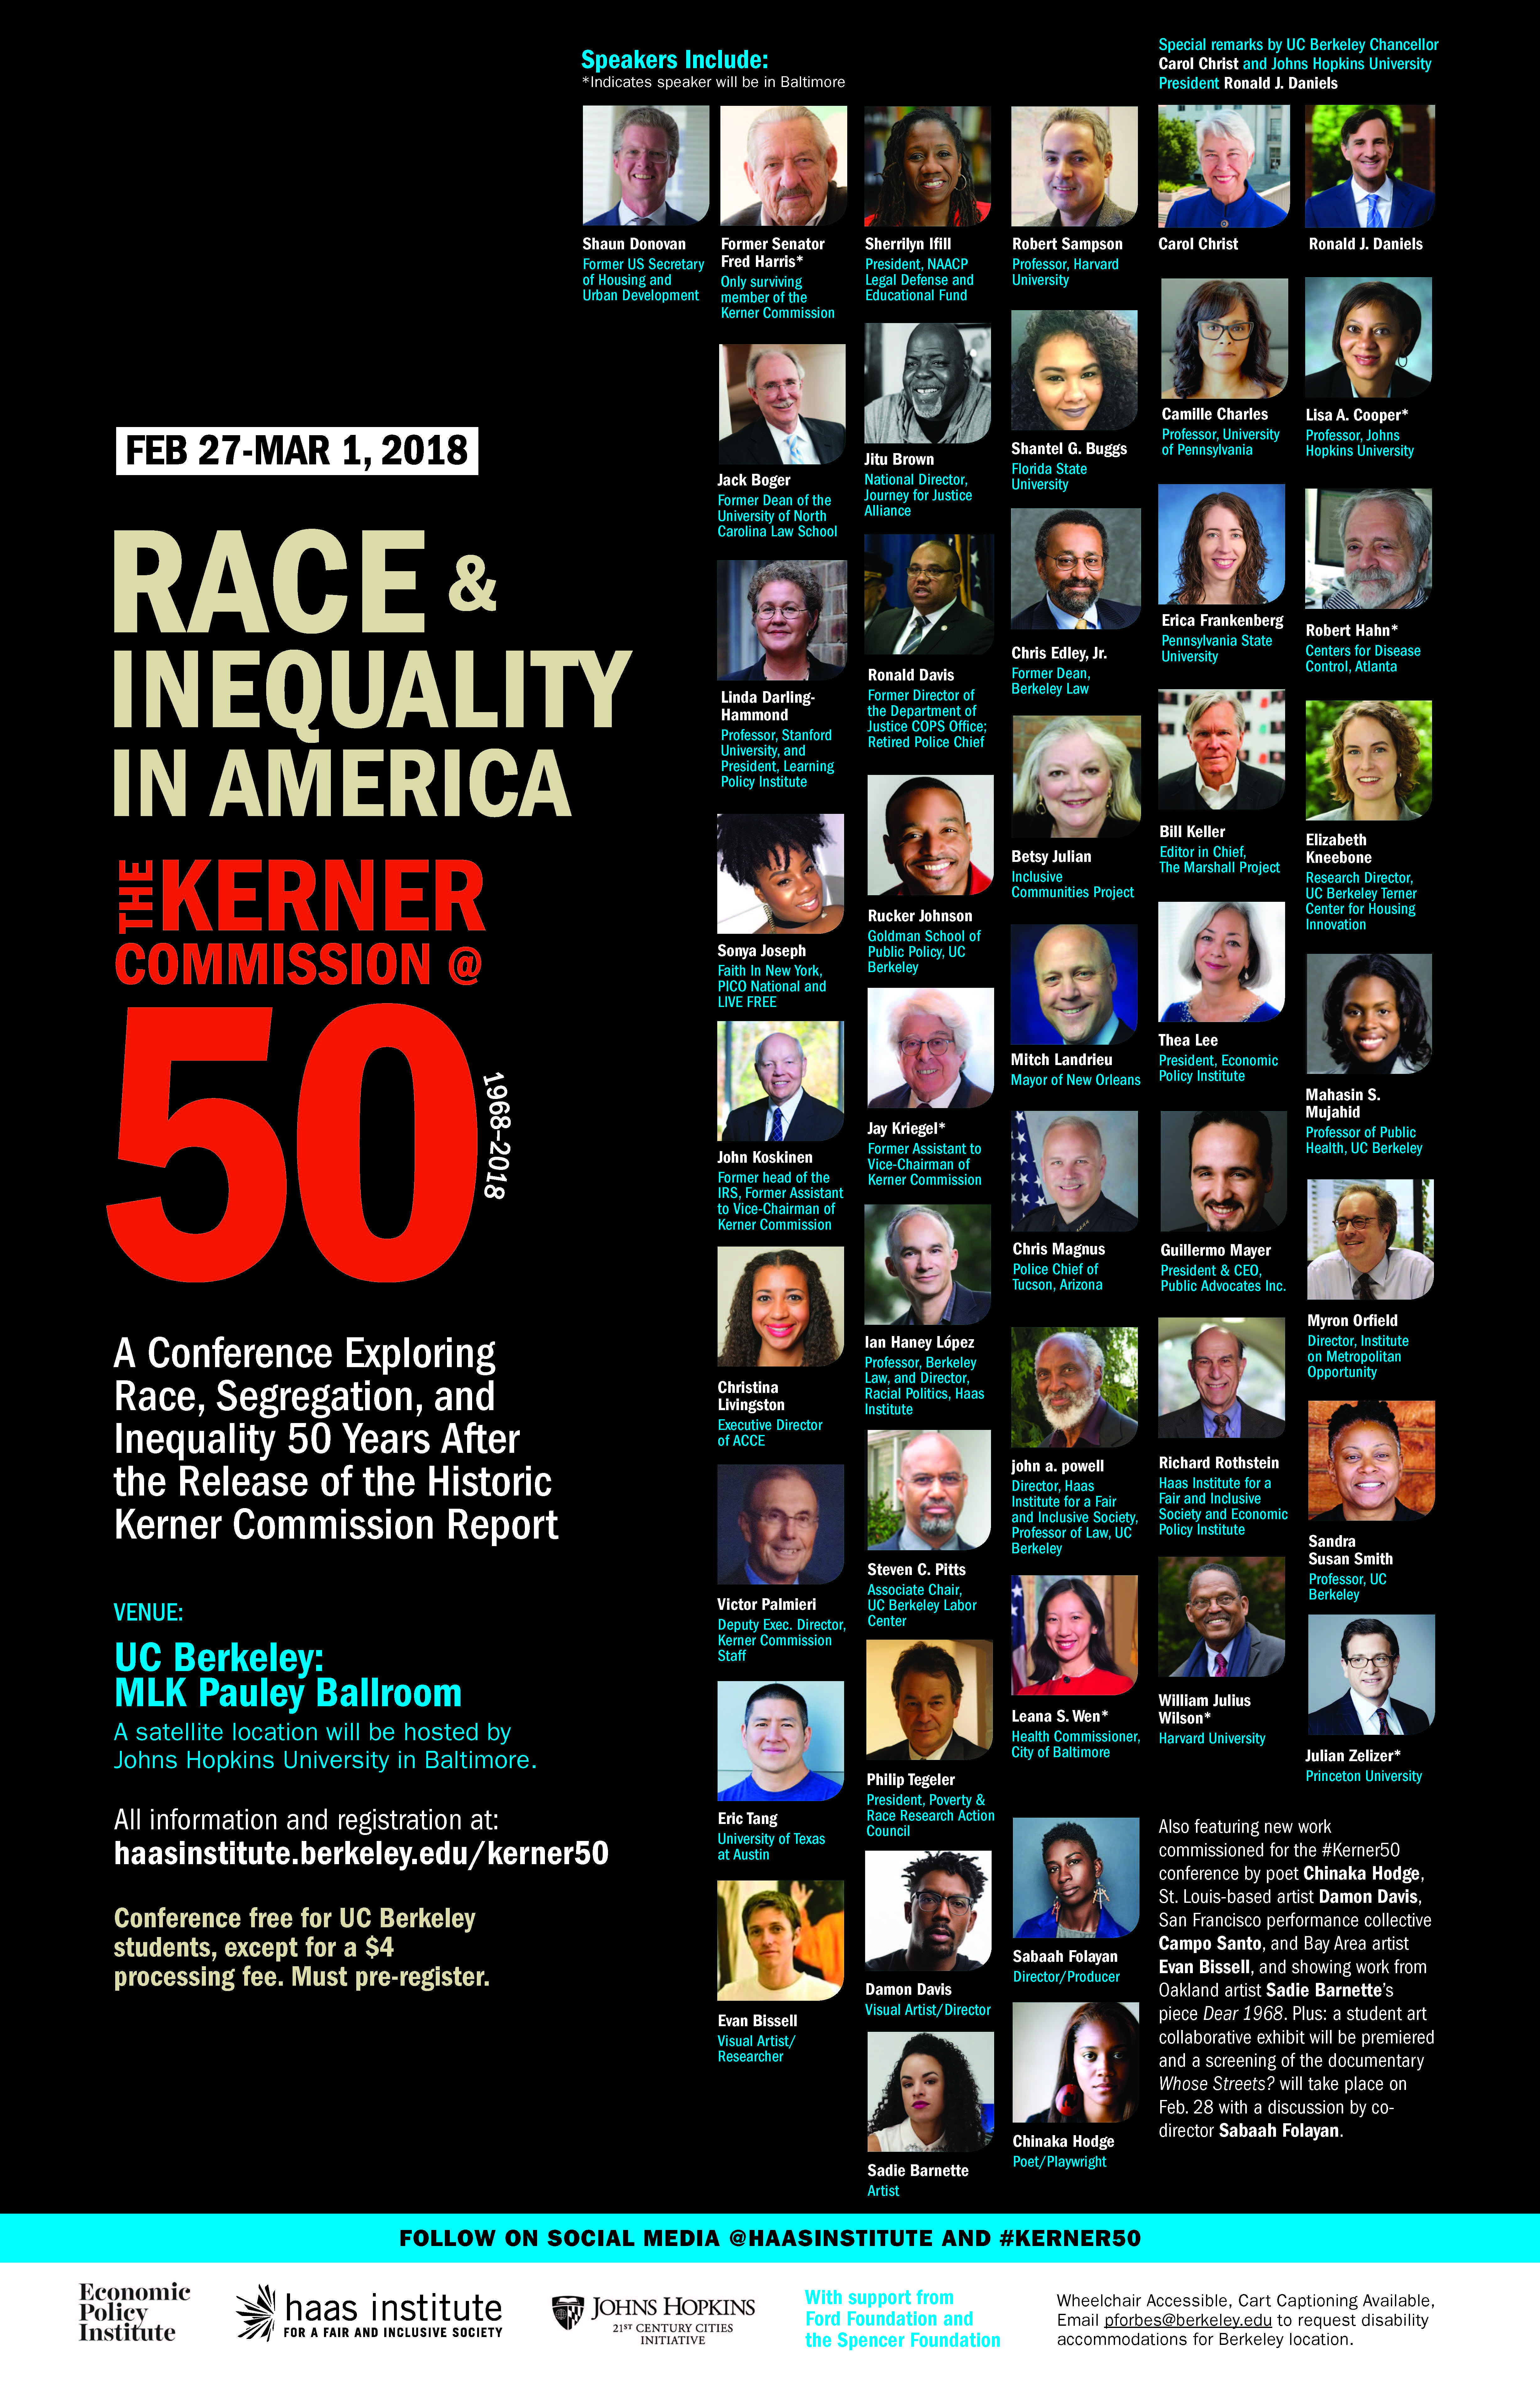 Race & Inequality in America: The Kerner Commission at 50